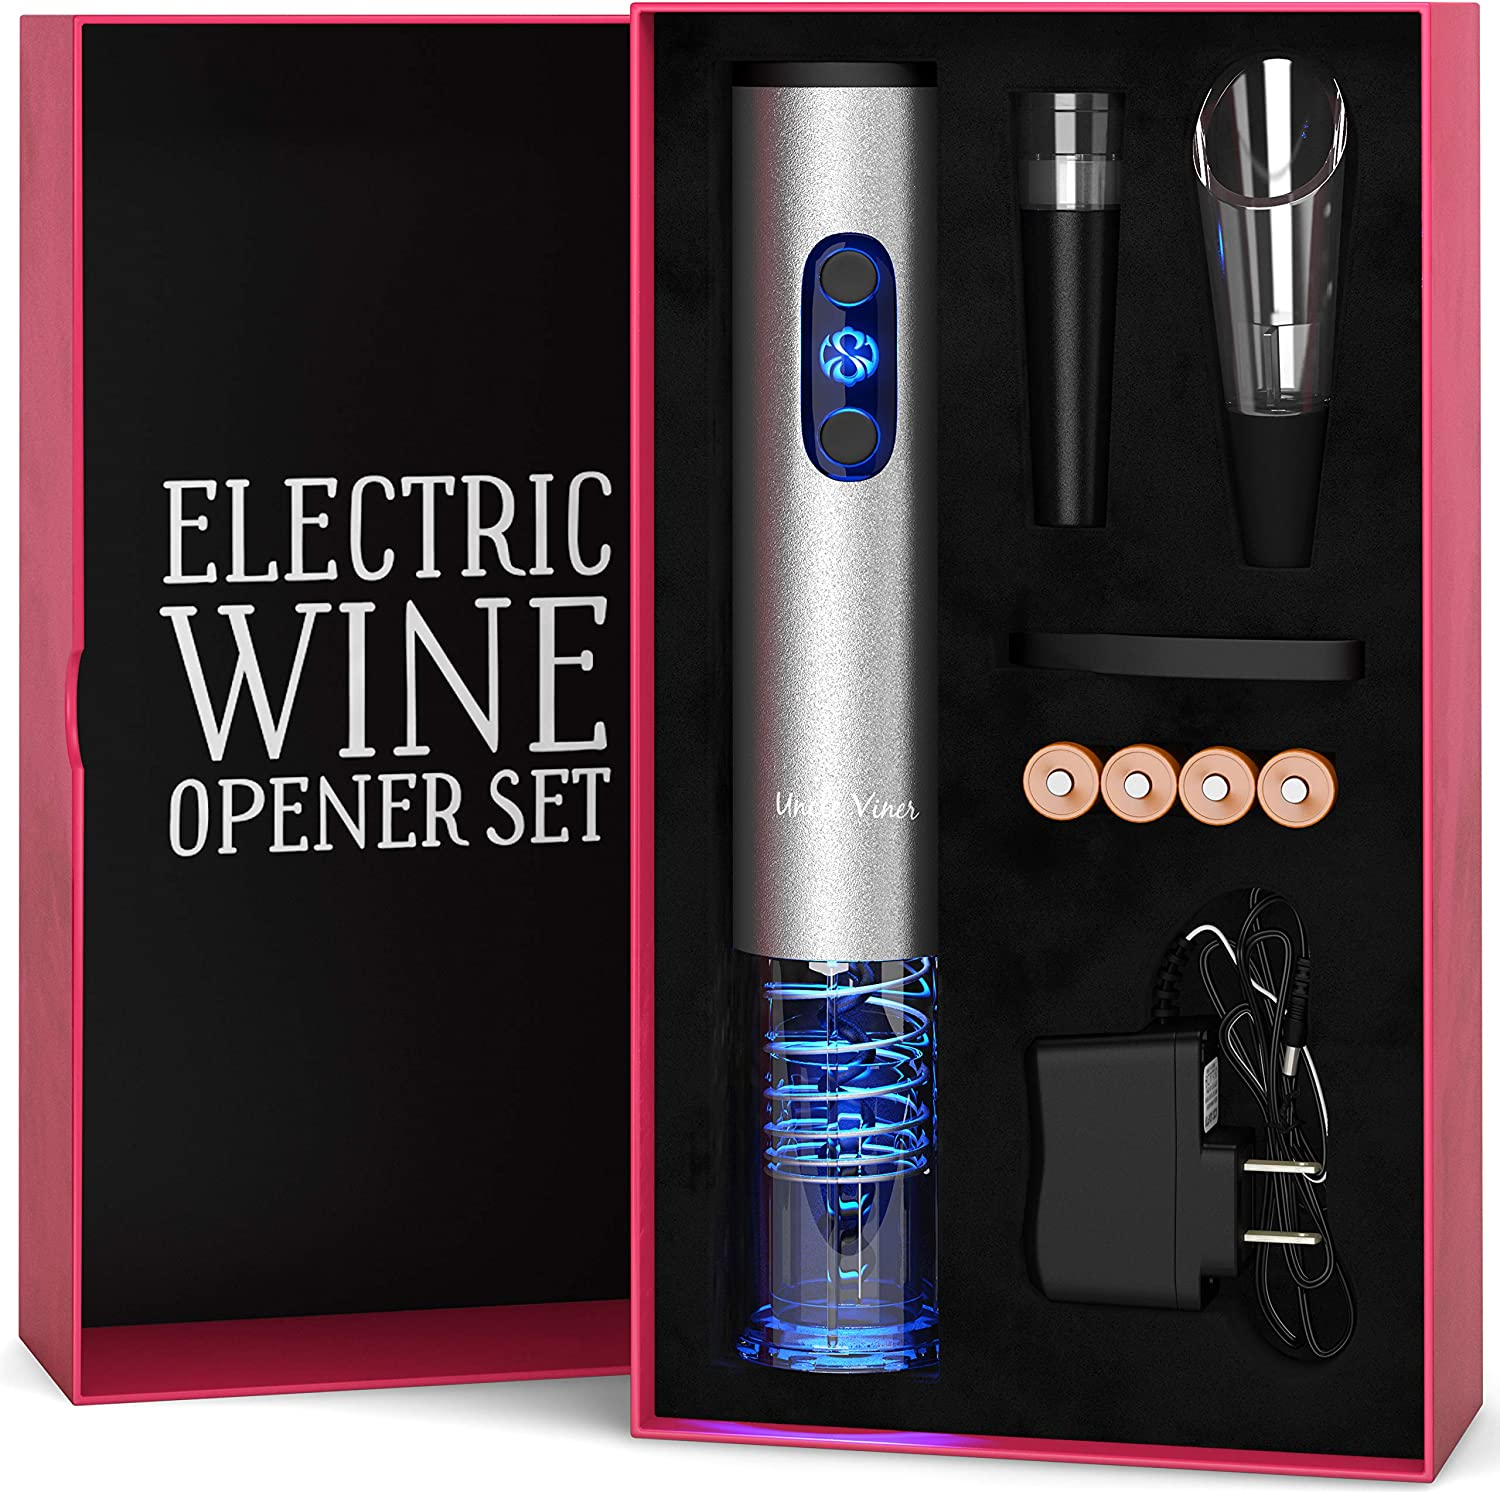 Electric Wine Opener Set by Uncle Viner